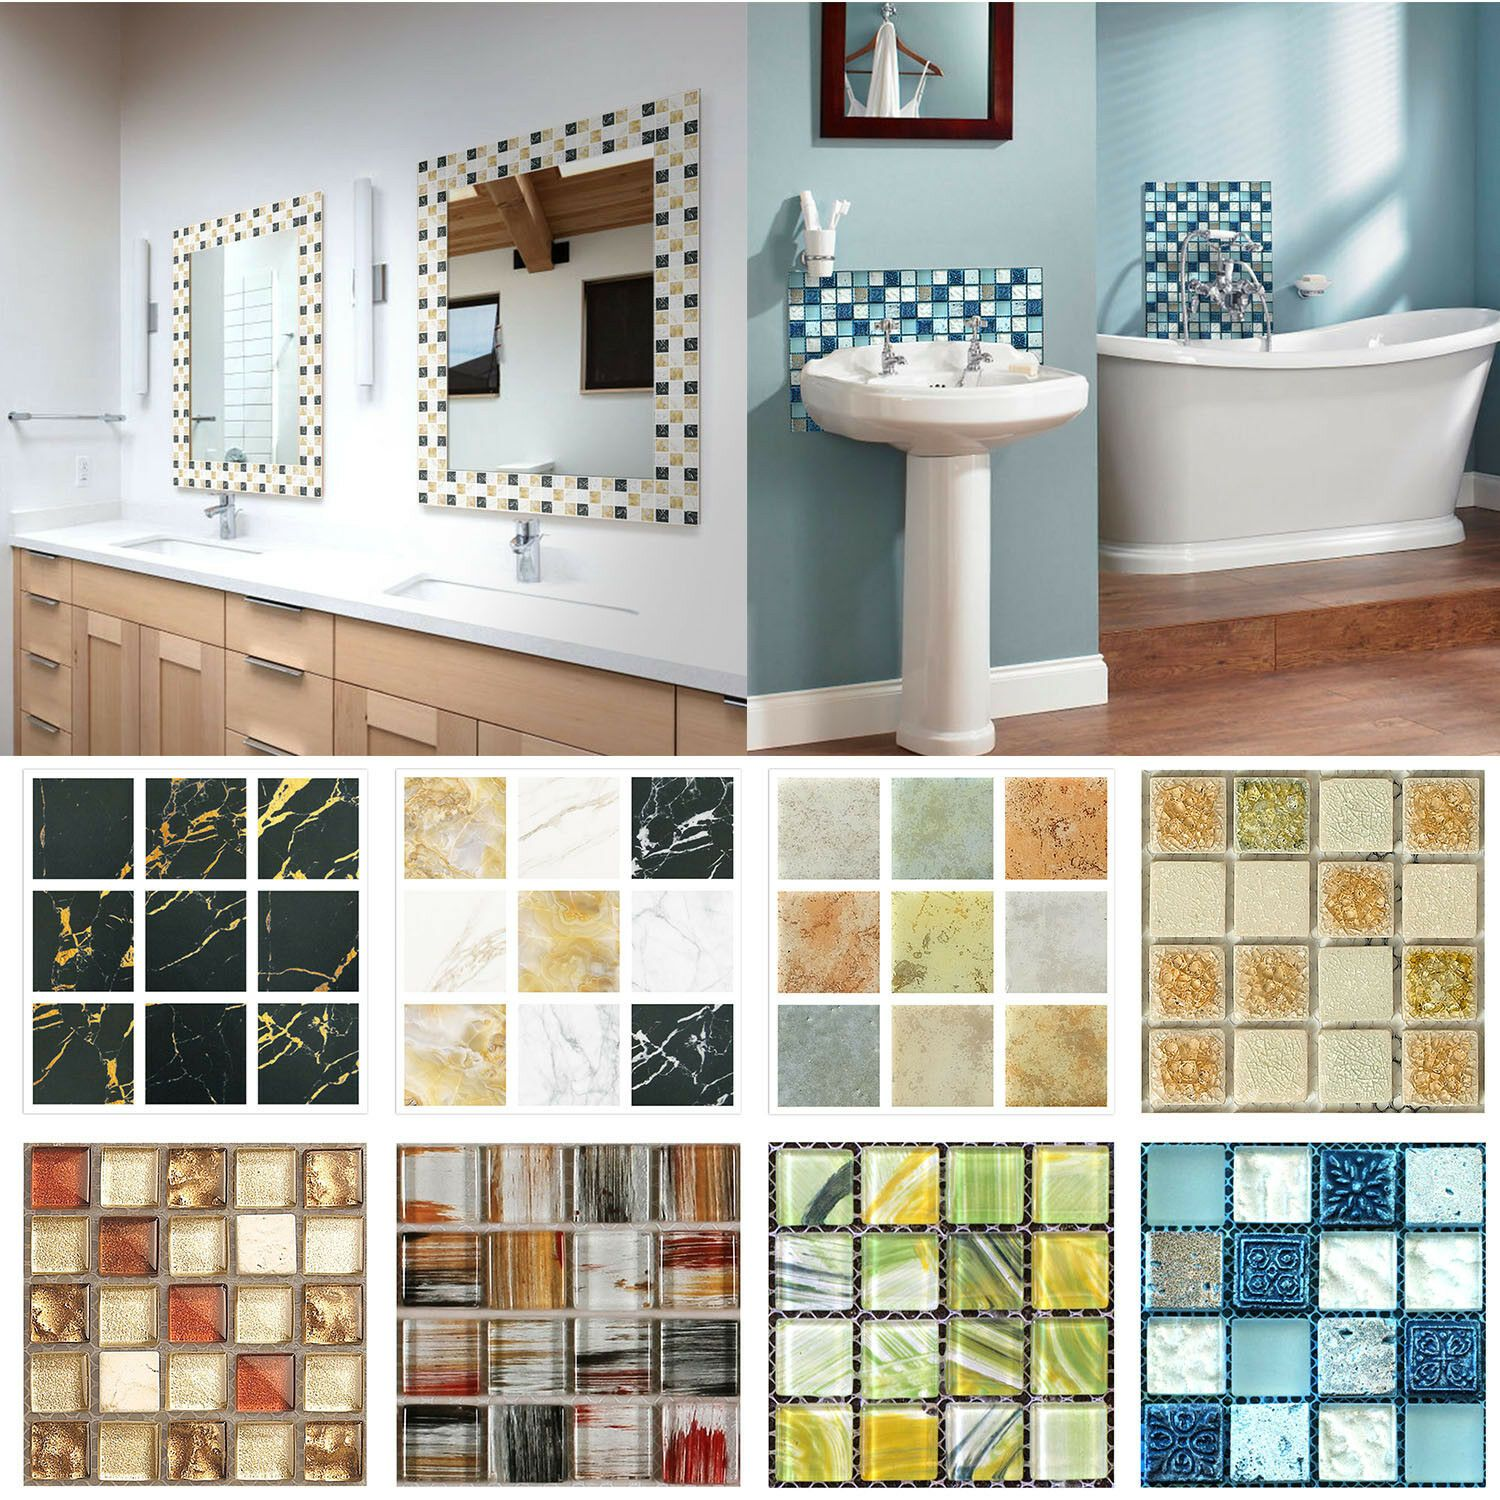 20pcs Set 3d Diy Waterproof Self Adhesive Wall Stickers Mosaic Tile Home Decal Wall Tiles Ideas Of Wall T